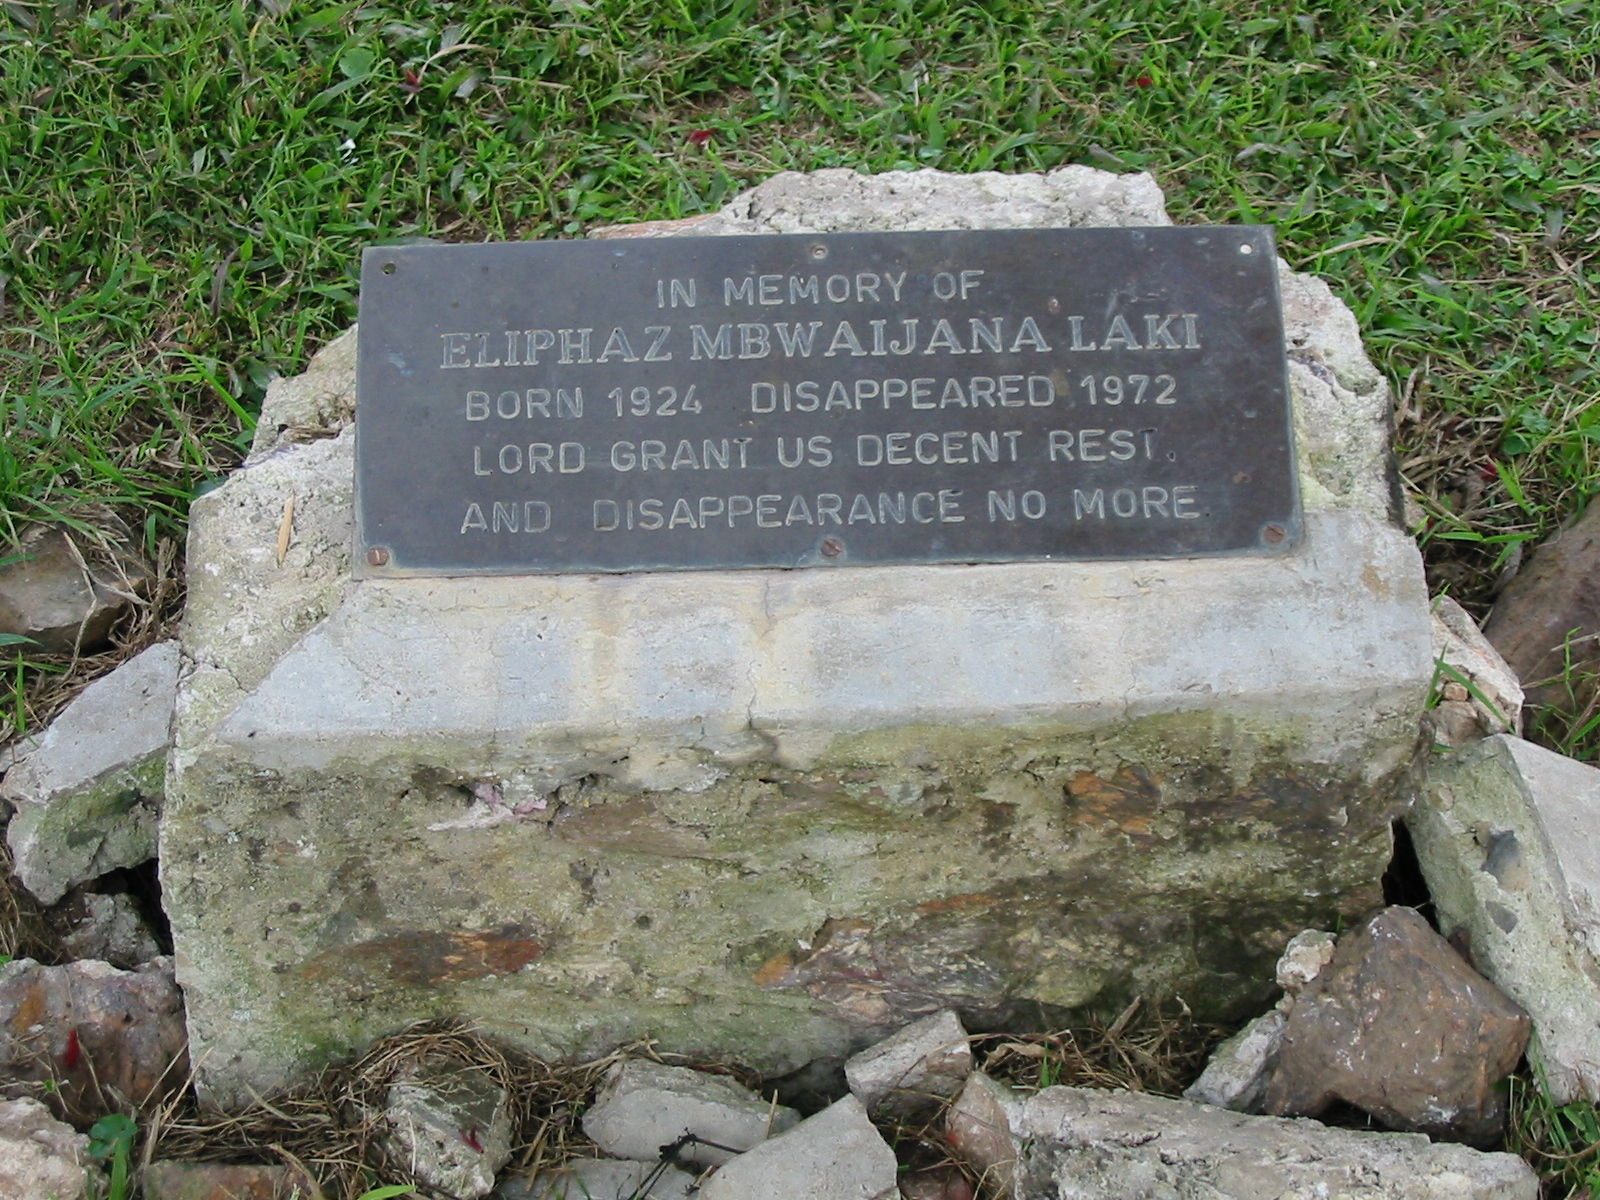 The memorial stone at the Laki family home in Ndeija (Andrew Rice)